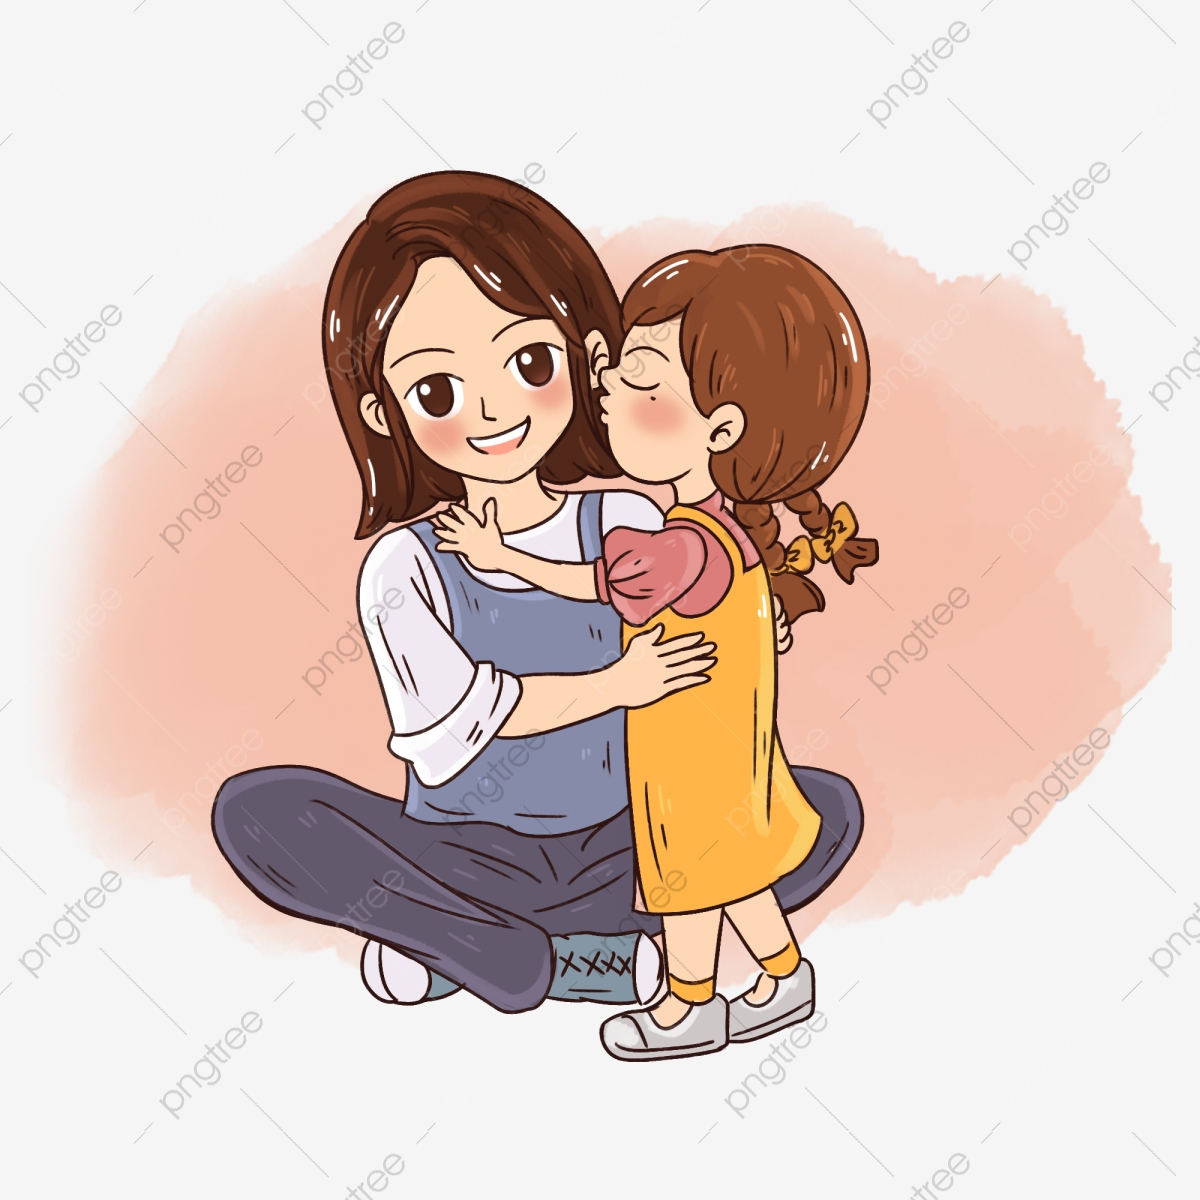 Mother S Day Kids Kissing Mother Hand Drawn Cartoon Elements Mother S Day Child Kiss Png Transparent Clipart Image And Psd File For Free Download